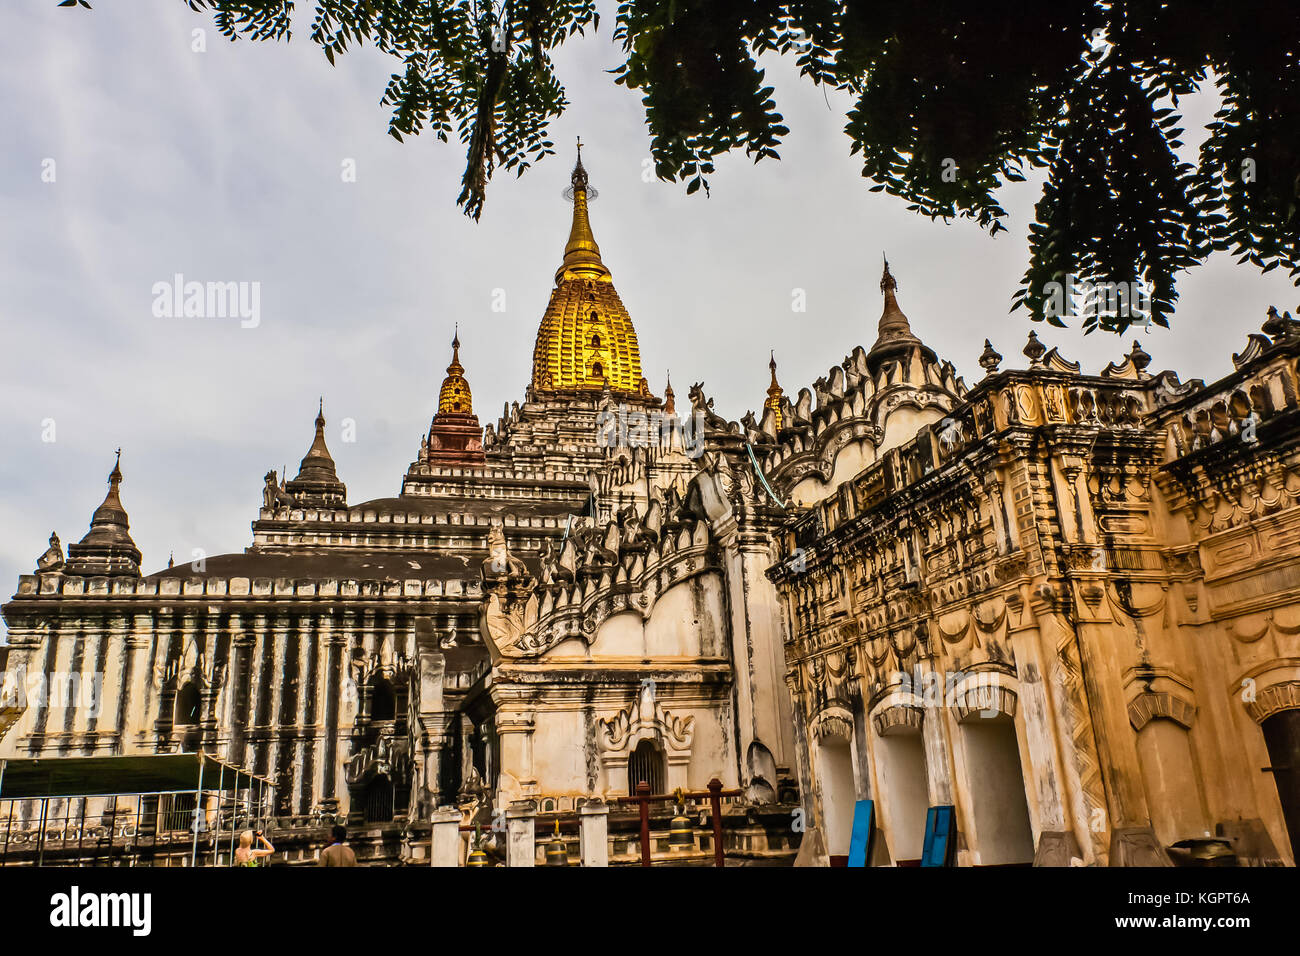 The Ananda Temple from outside, Old Bagan, Myanmar - Stock Image